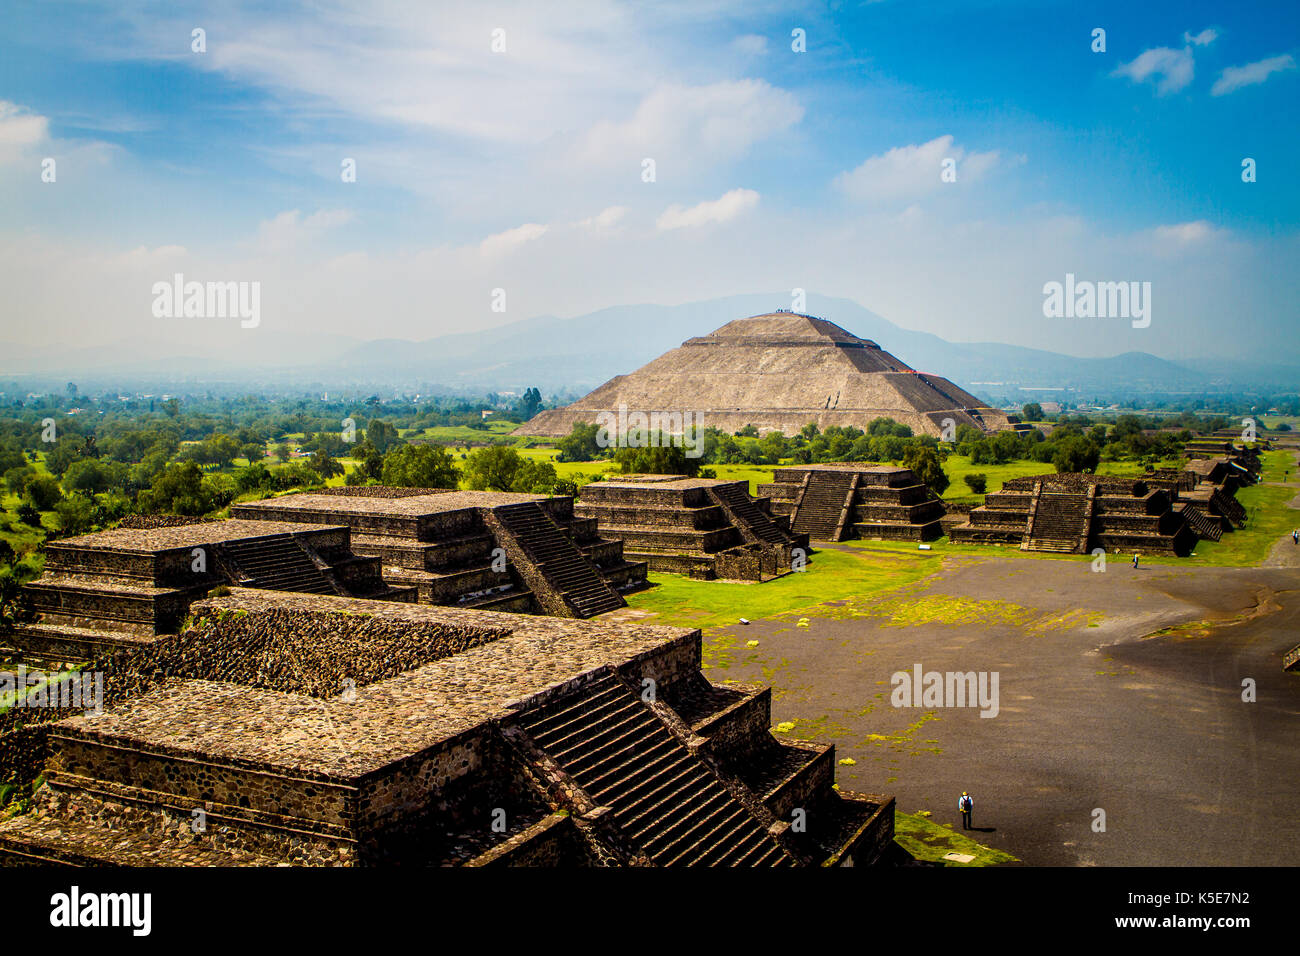 Pyramid of the Sun, Teotihuacan, Mexico - Stock Image